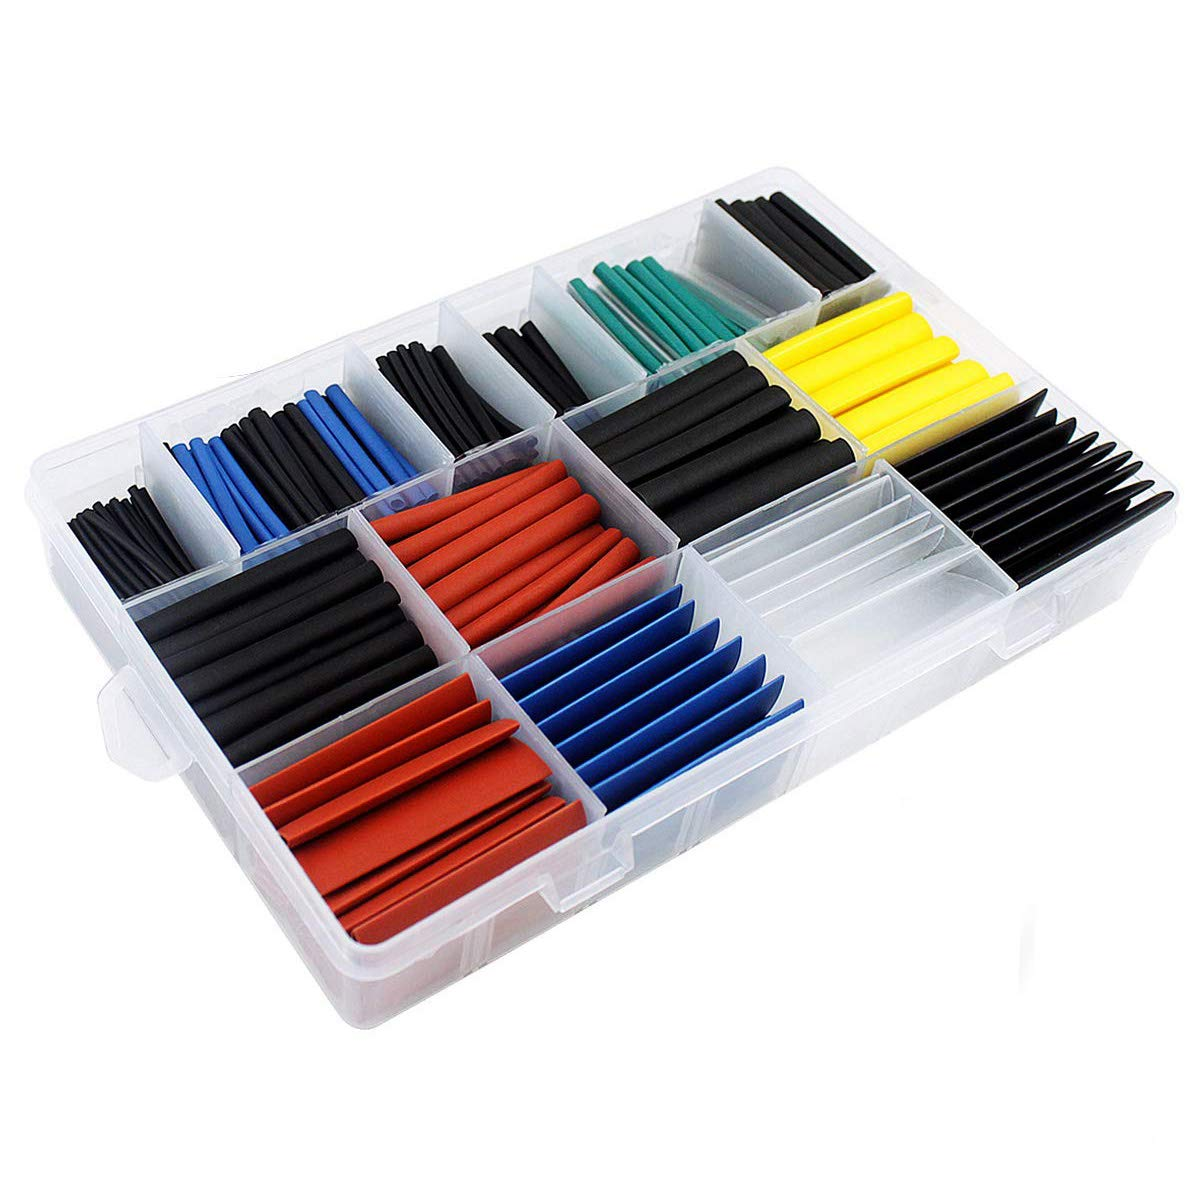 Heat Shrink Tubing 580 Pcs Electric Insulation Tube Heat Shrink Wrap Cable Sleeve 5 Colors 11 Sizes 301-03682